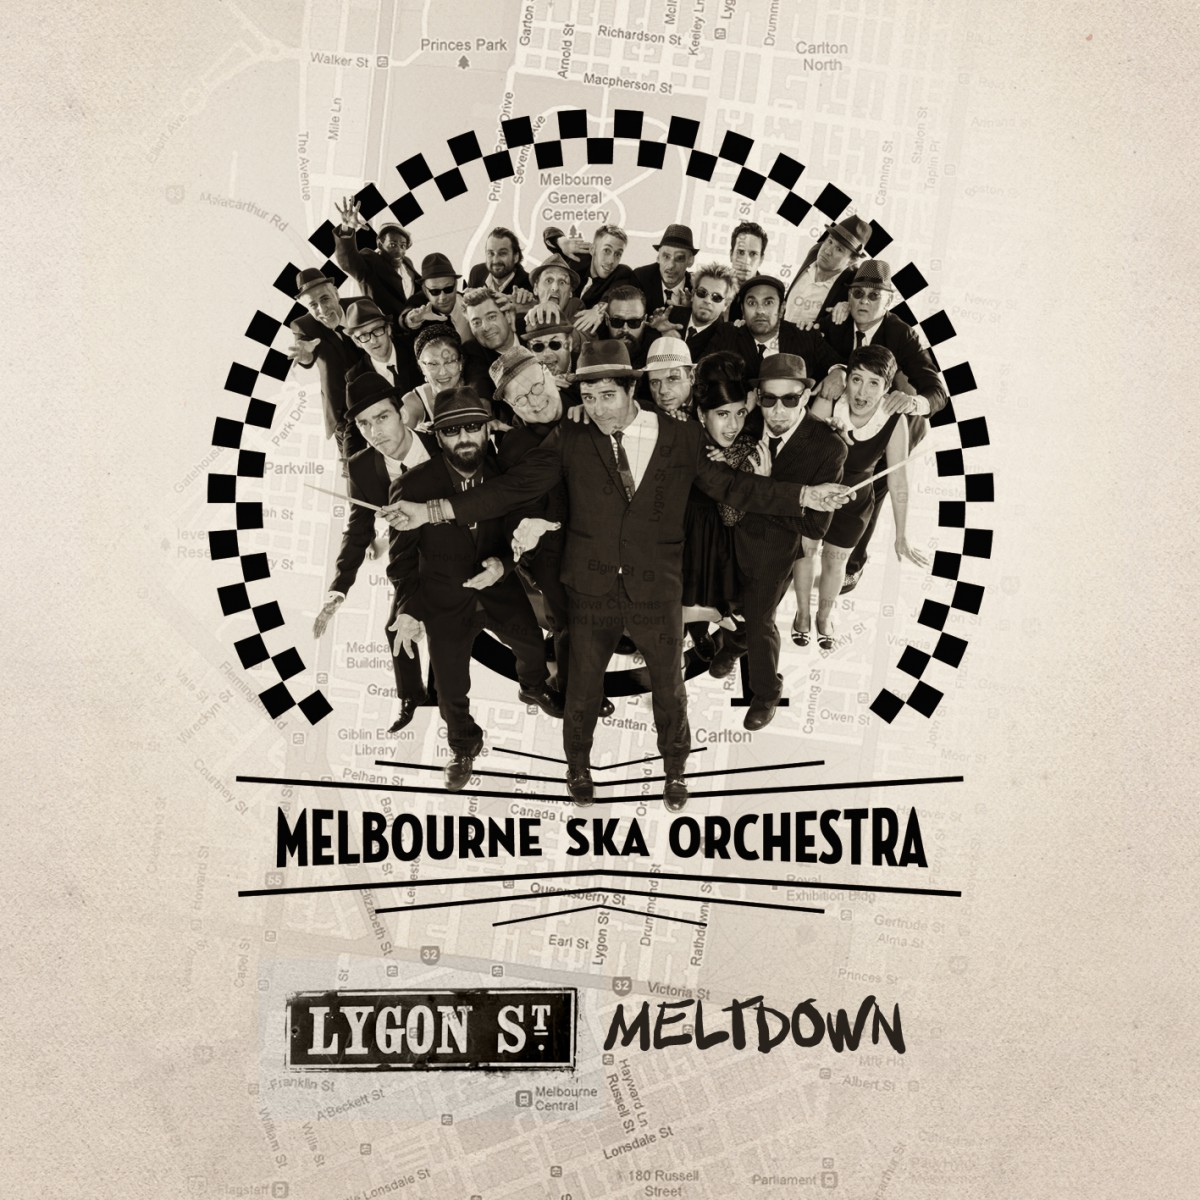 Melbourne Ska Orchestra - Lygon Street Meltdown single cover